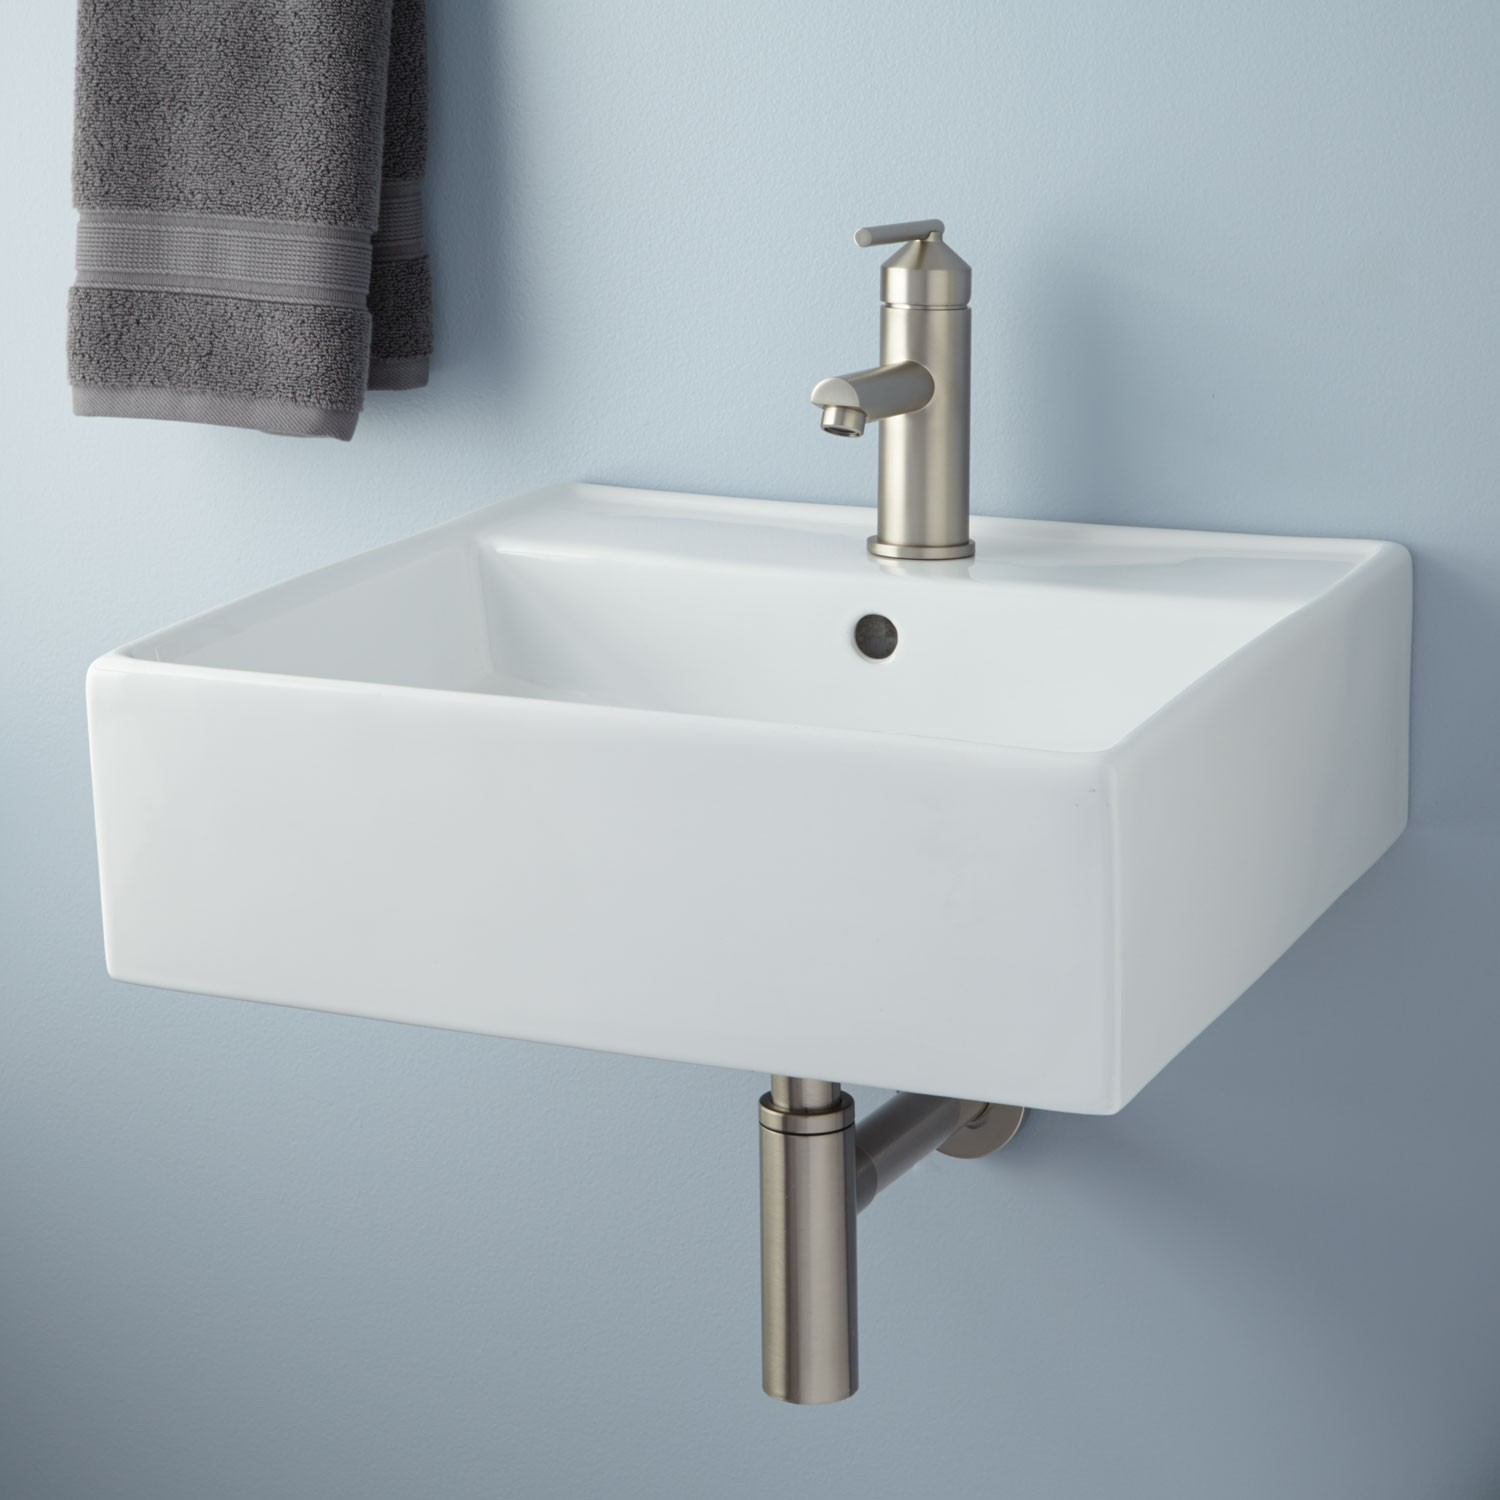 Stainless Steel Wall Mounted Kitchen Sink